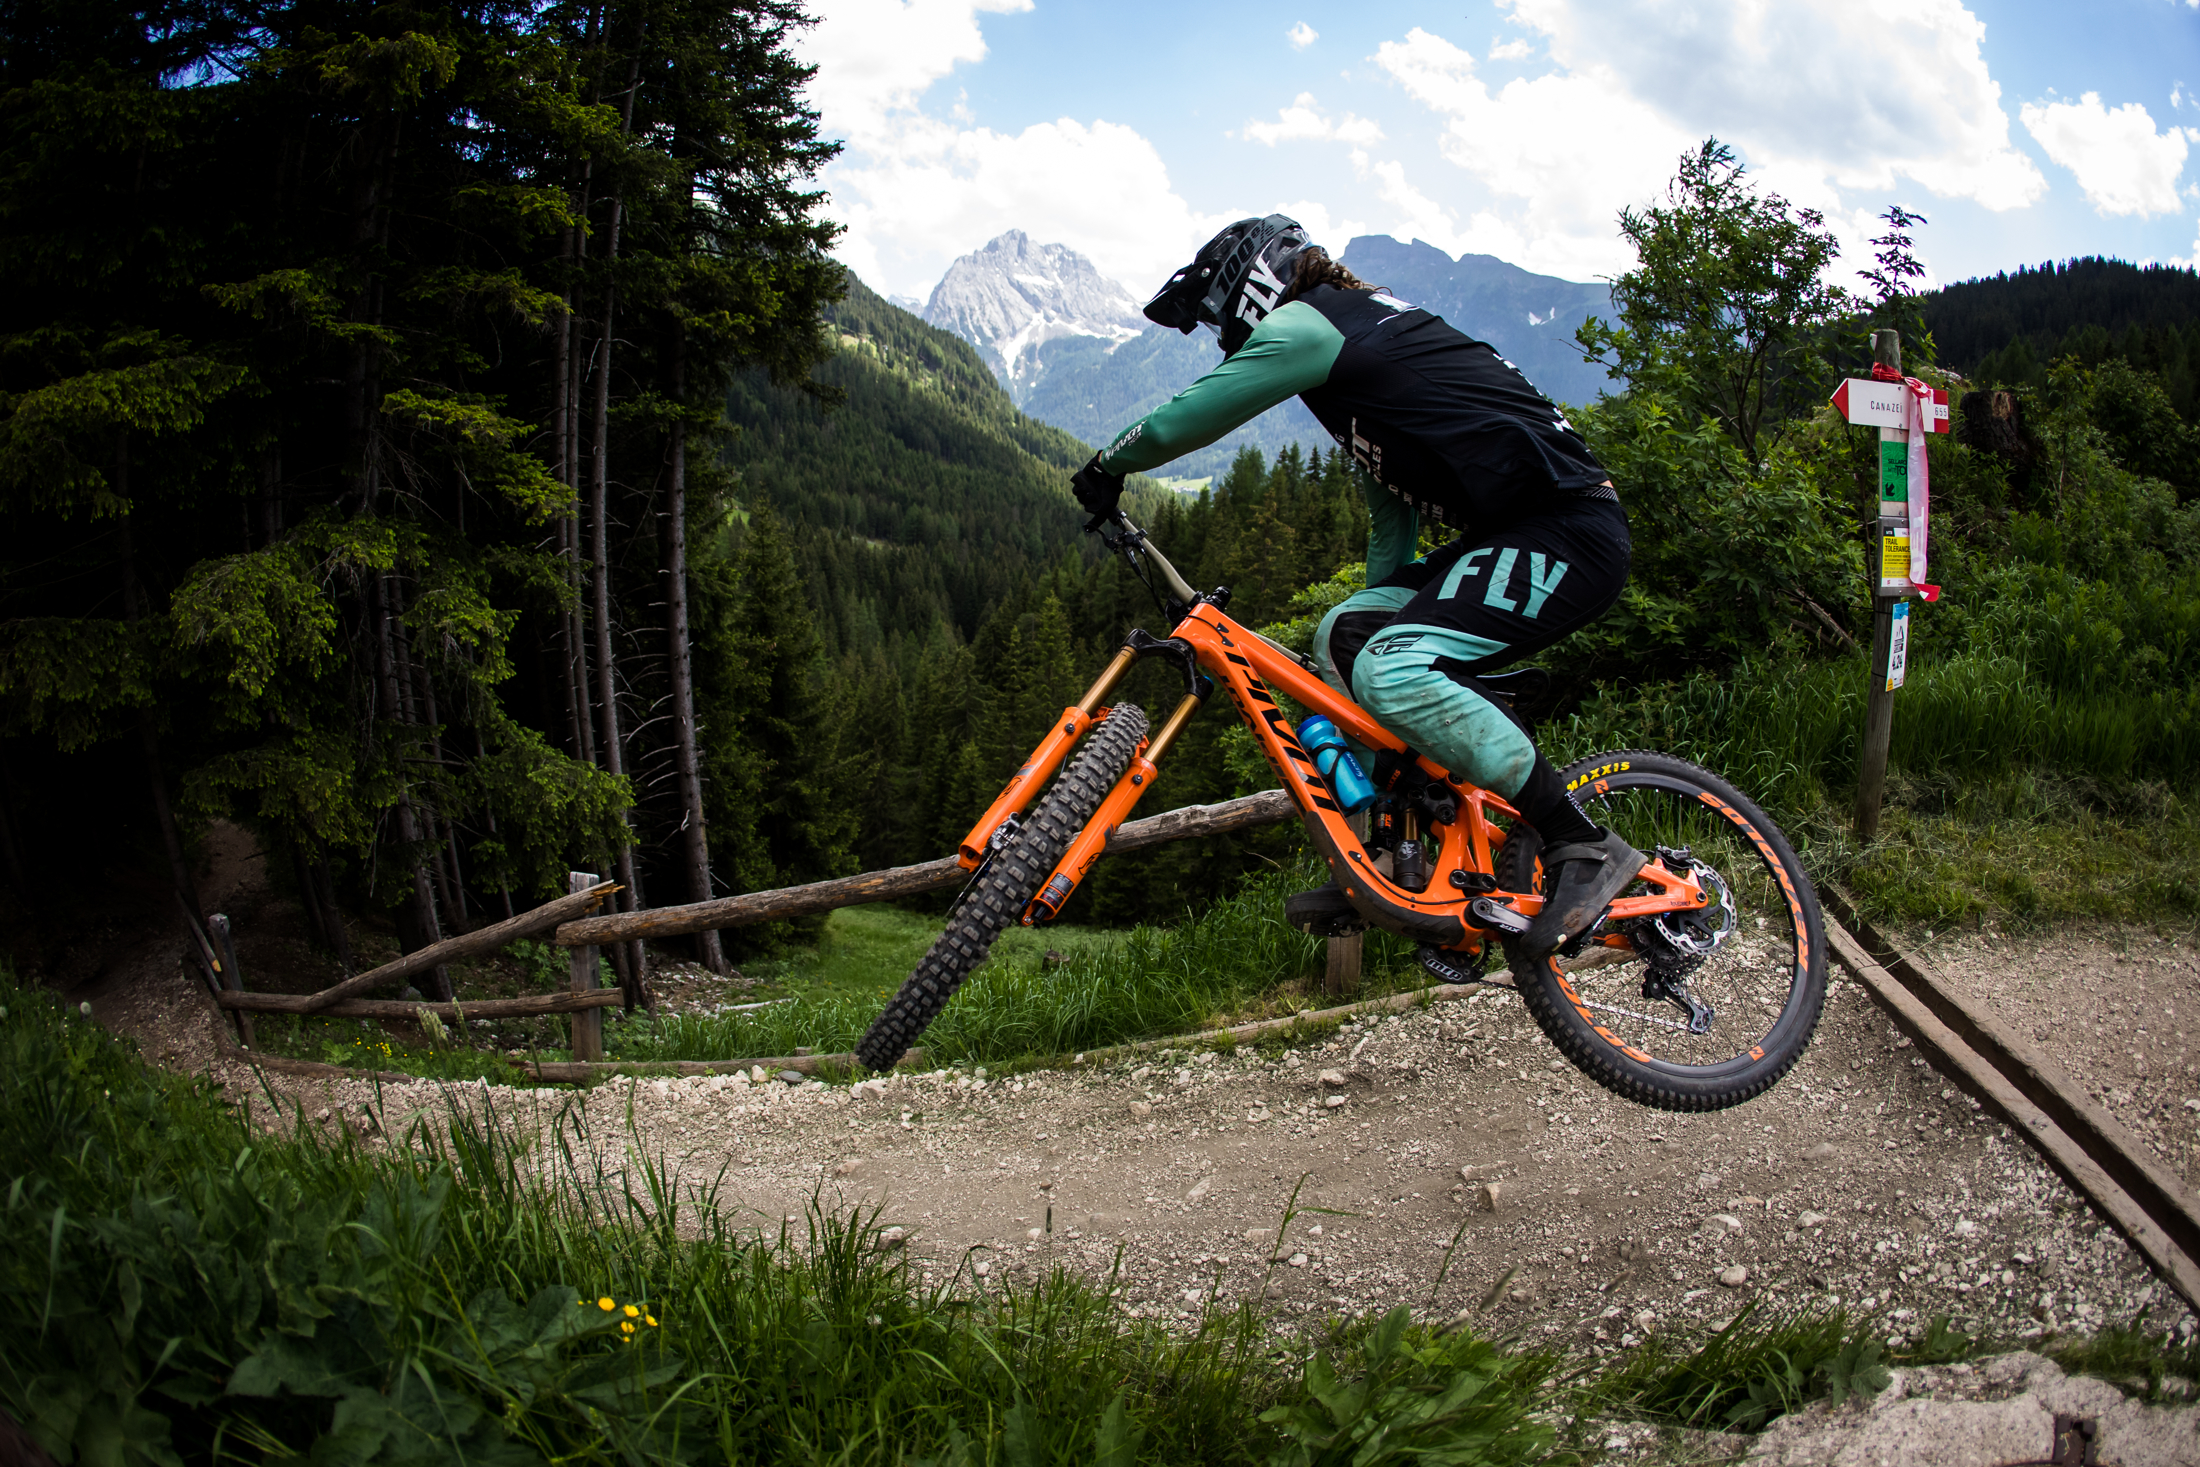 A whip tossed by a Pivot Factory Racer in front of the mountain views